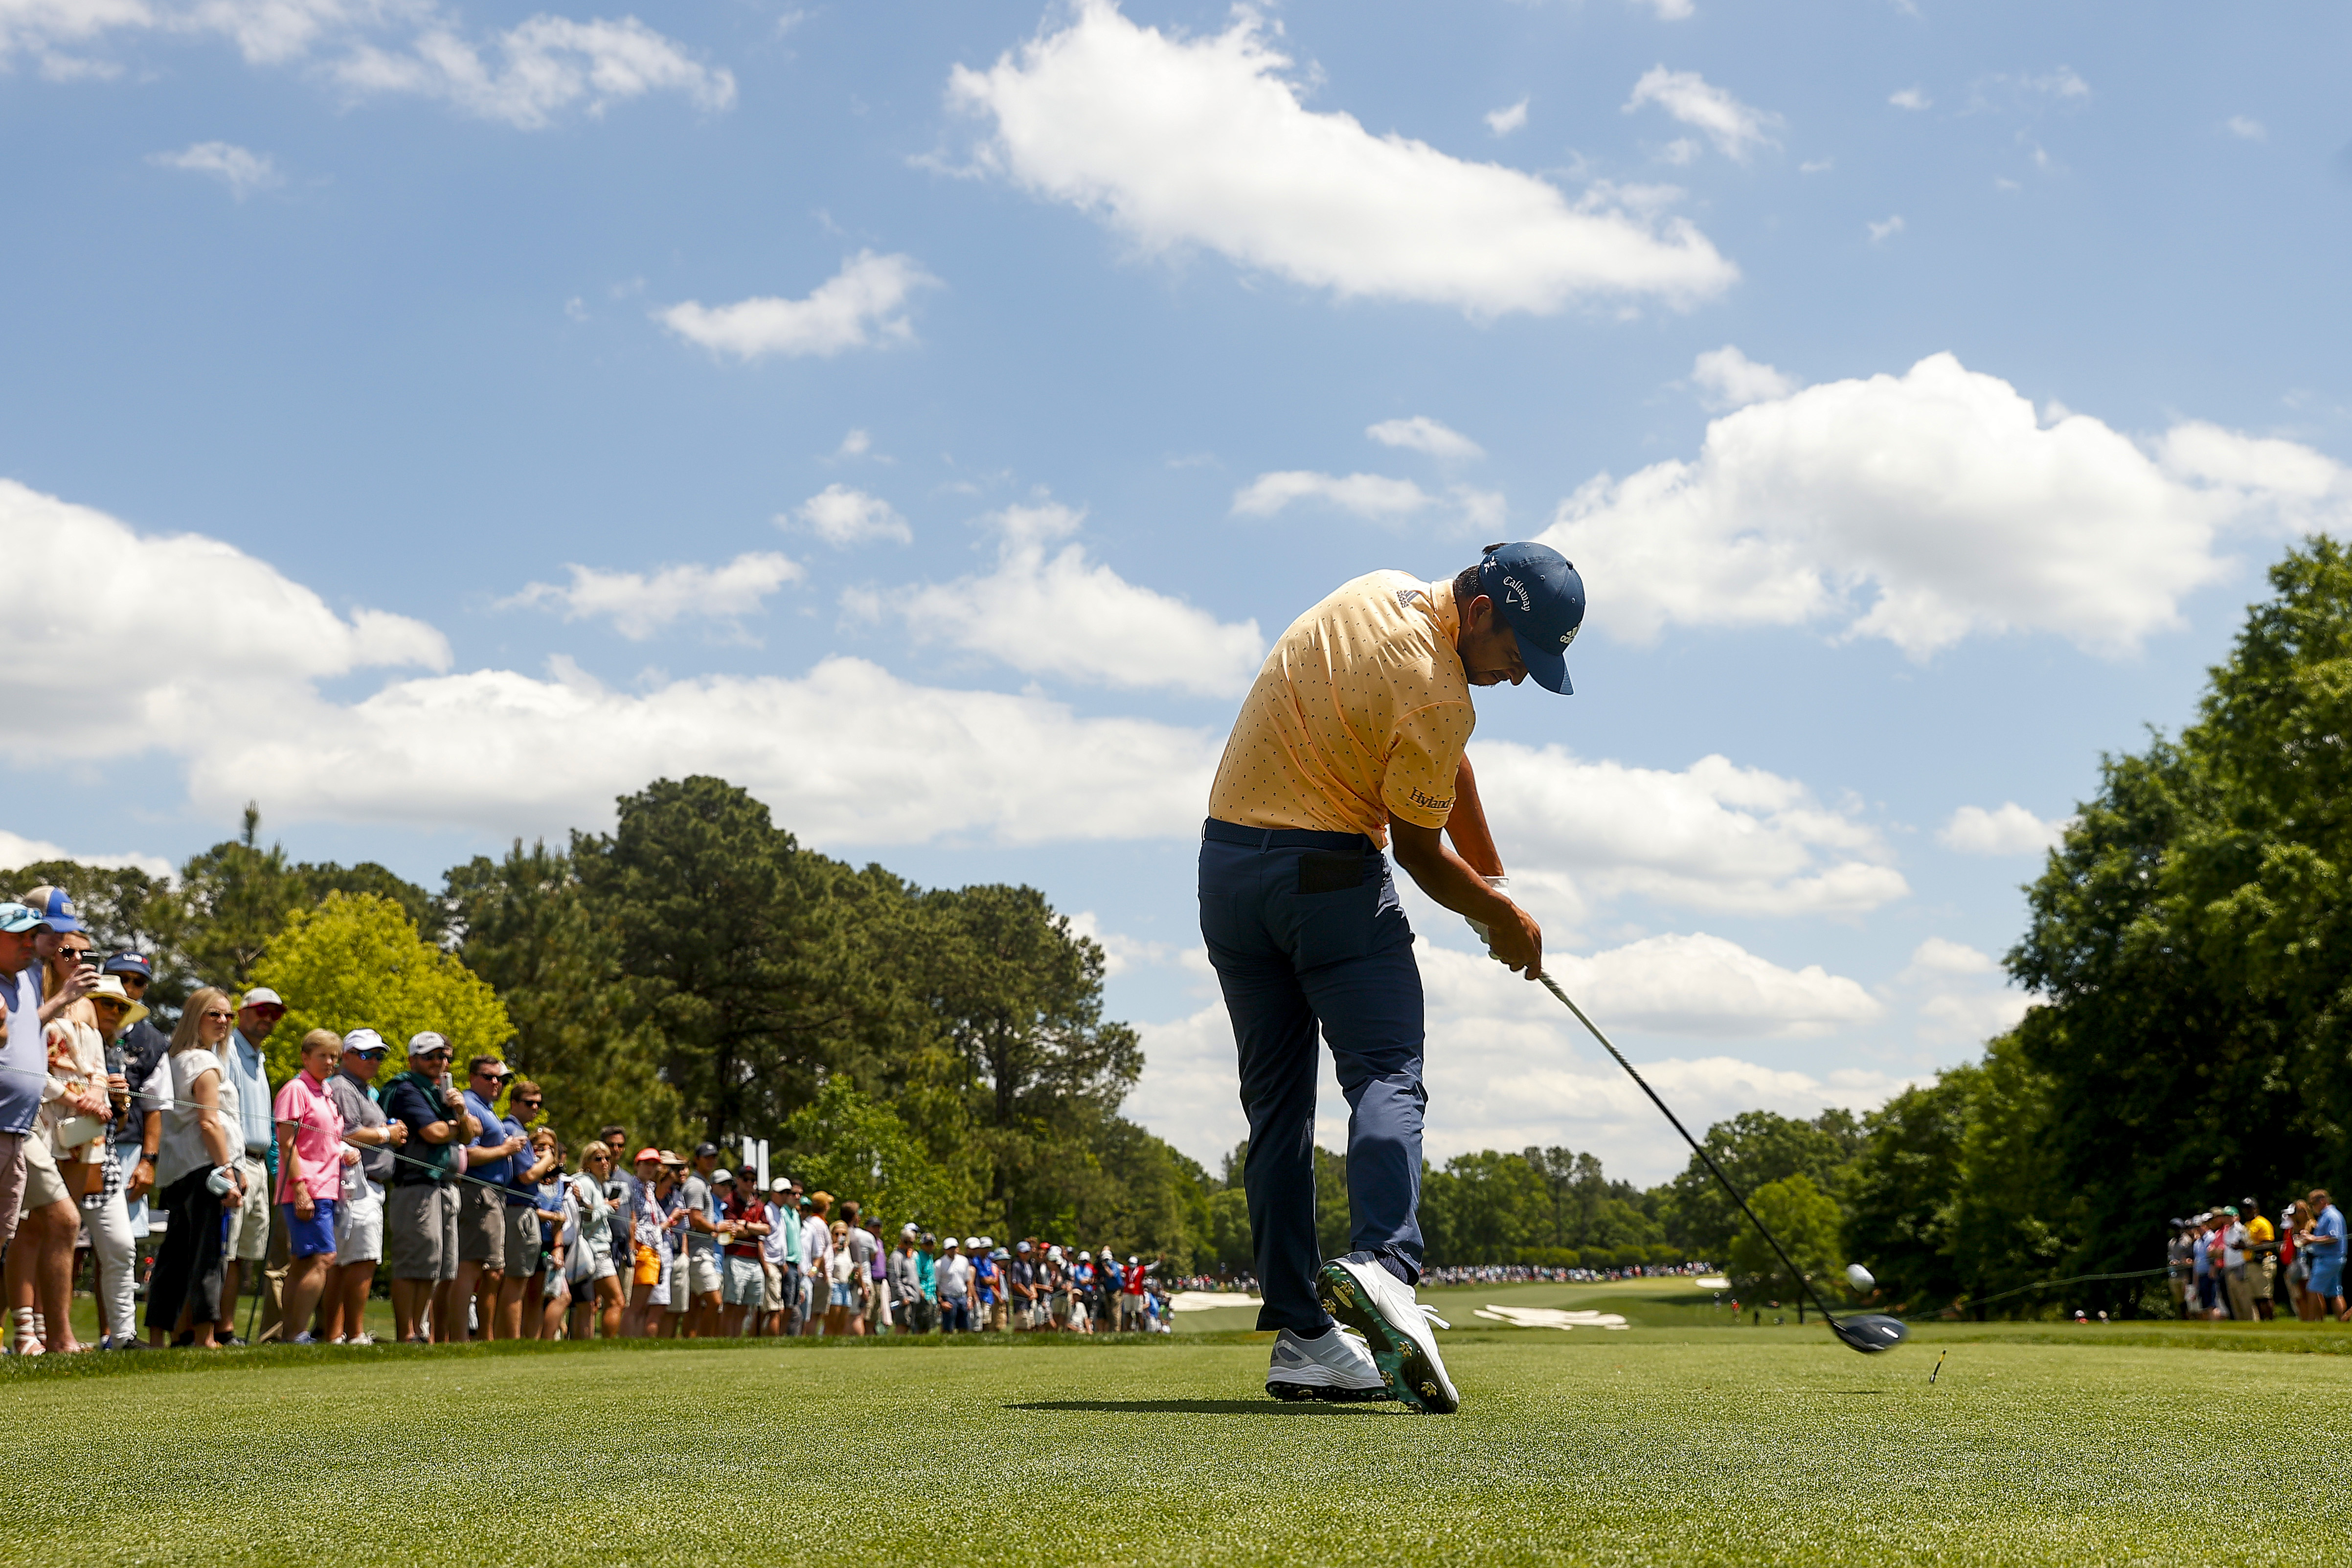 Xander Schauffele of the United States plays his shot from the fifth tee during the first round of the 2021 Wells Fargo Championship at Quail Hollow Club on May 06, 2021 in Charlotte, North Carolina.